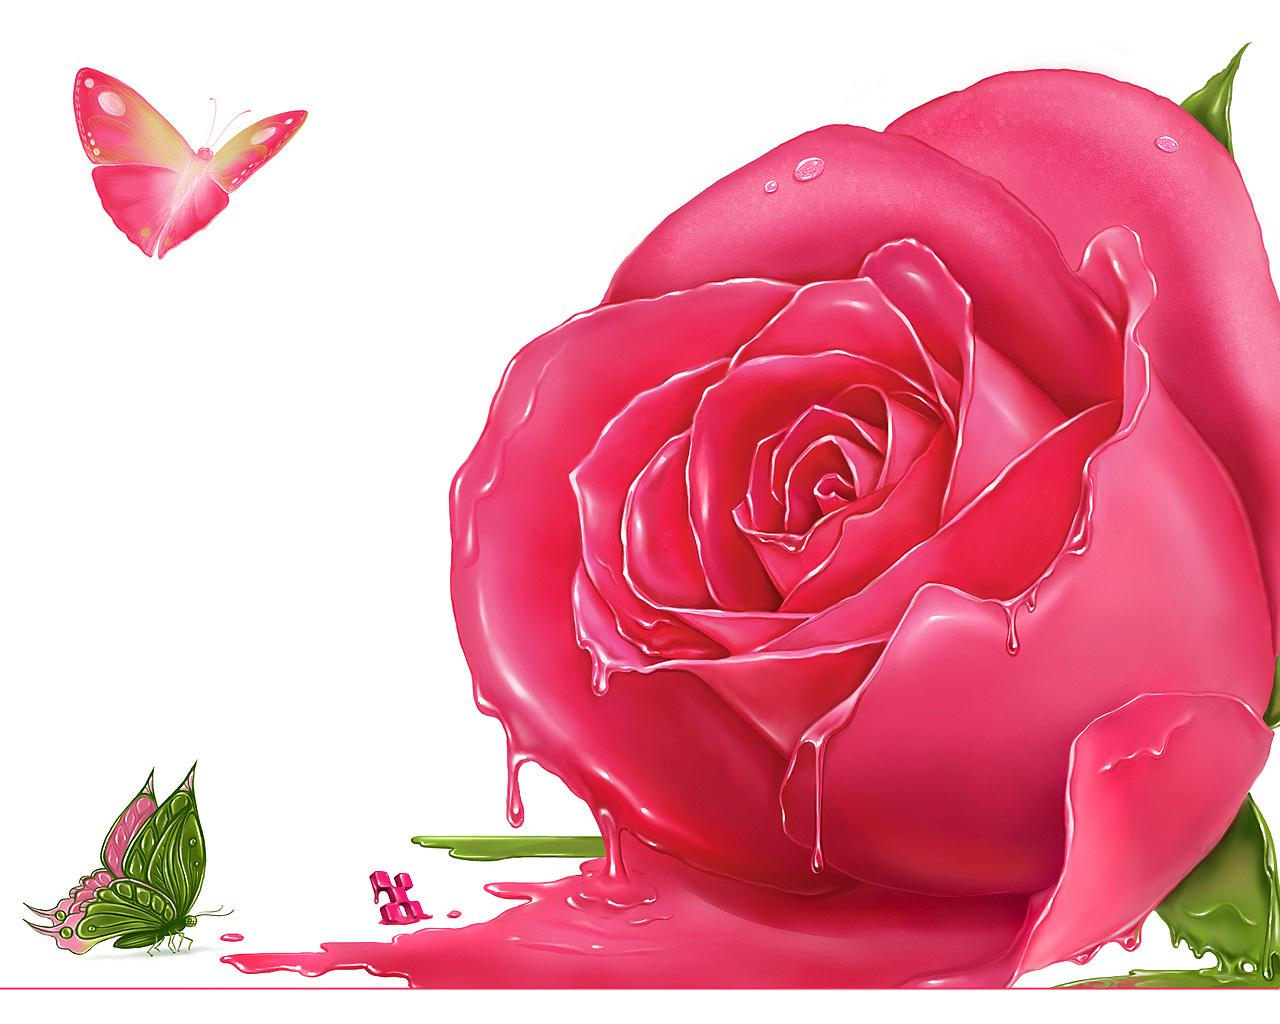 Wallpaper beautiful rose wallpapers 2011 - Pretty roses wallpaper ...